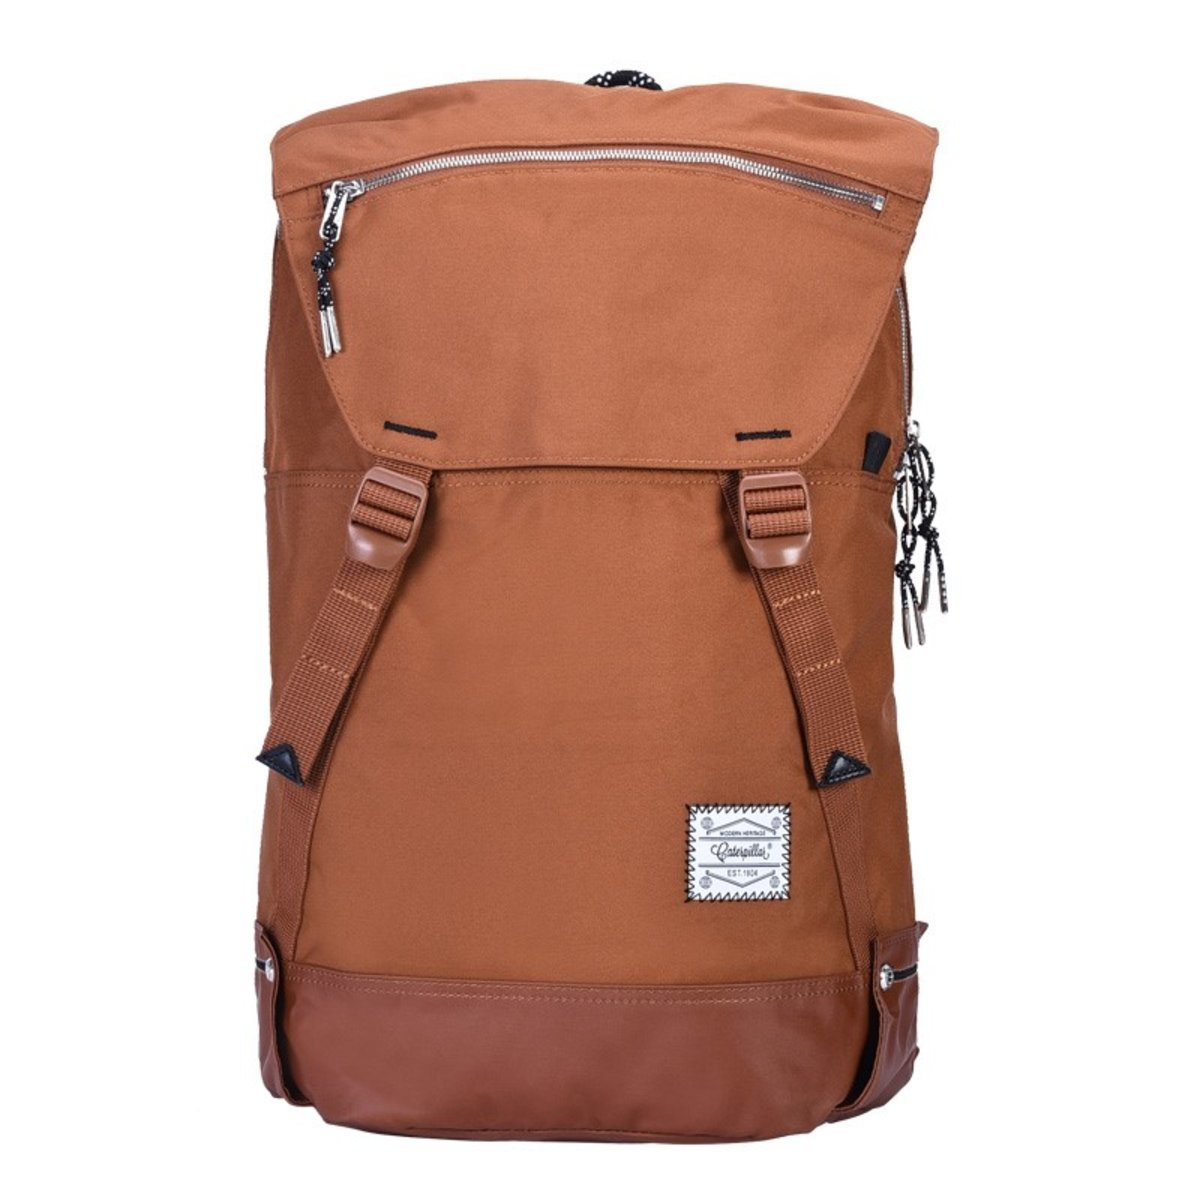 Essential Rebel Backpack (Large)  Glazer Ginger|背包 背囊 旅遊外出必備